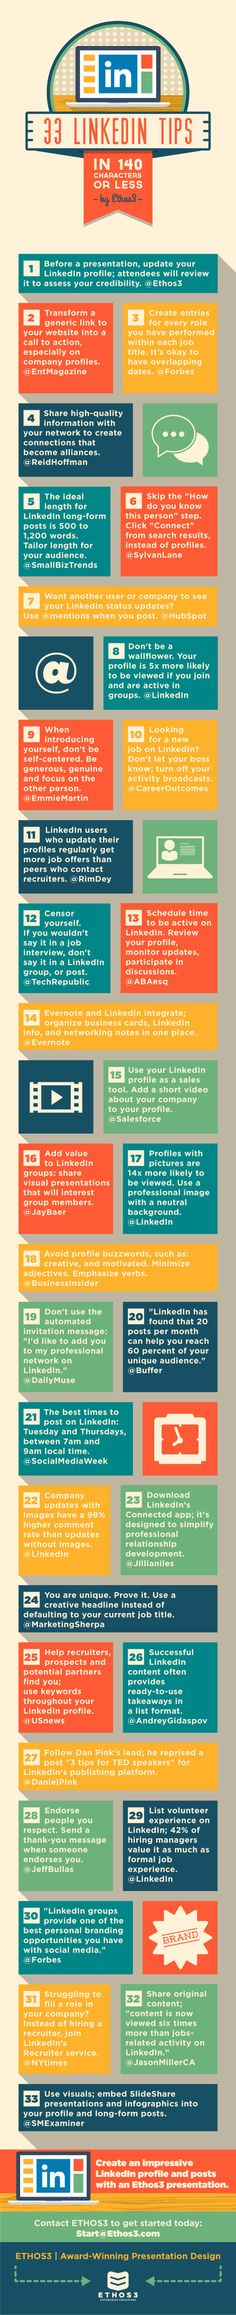 Brief flashes of #LinkedIn wisdom: Presentation consulting firm Ethos3 compiled this infographic of 33 examples of great LinkedIn advice posted to Twitter. #socialmedia #business